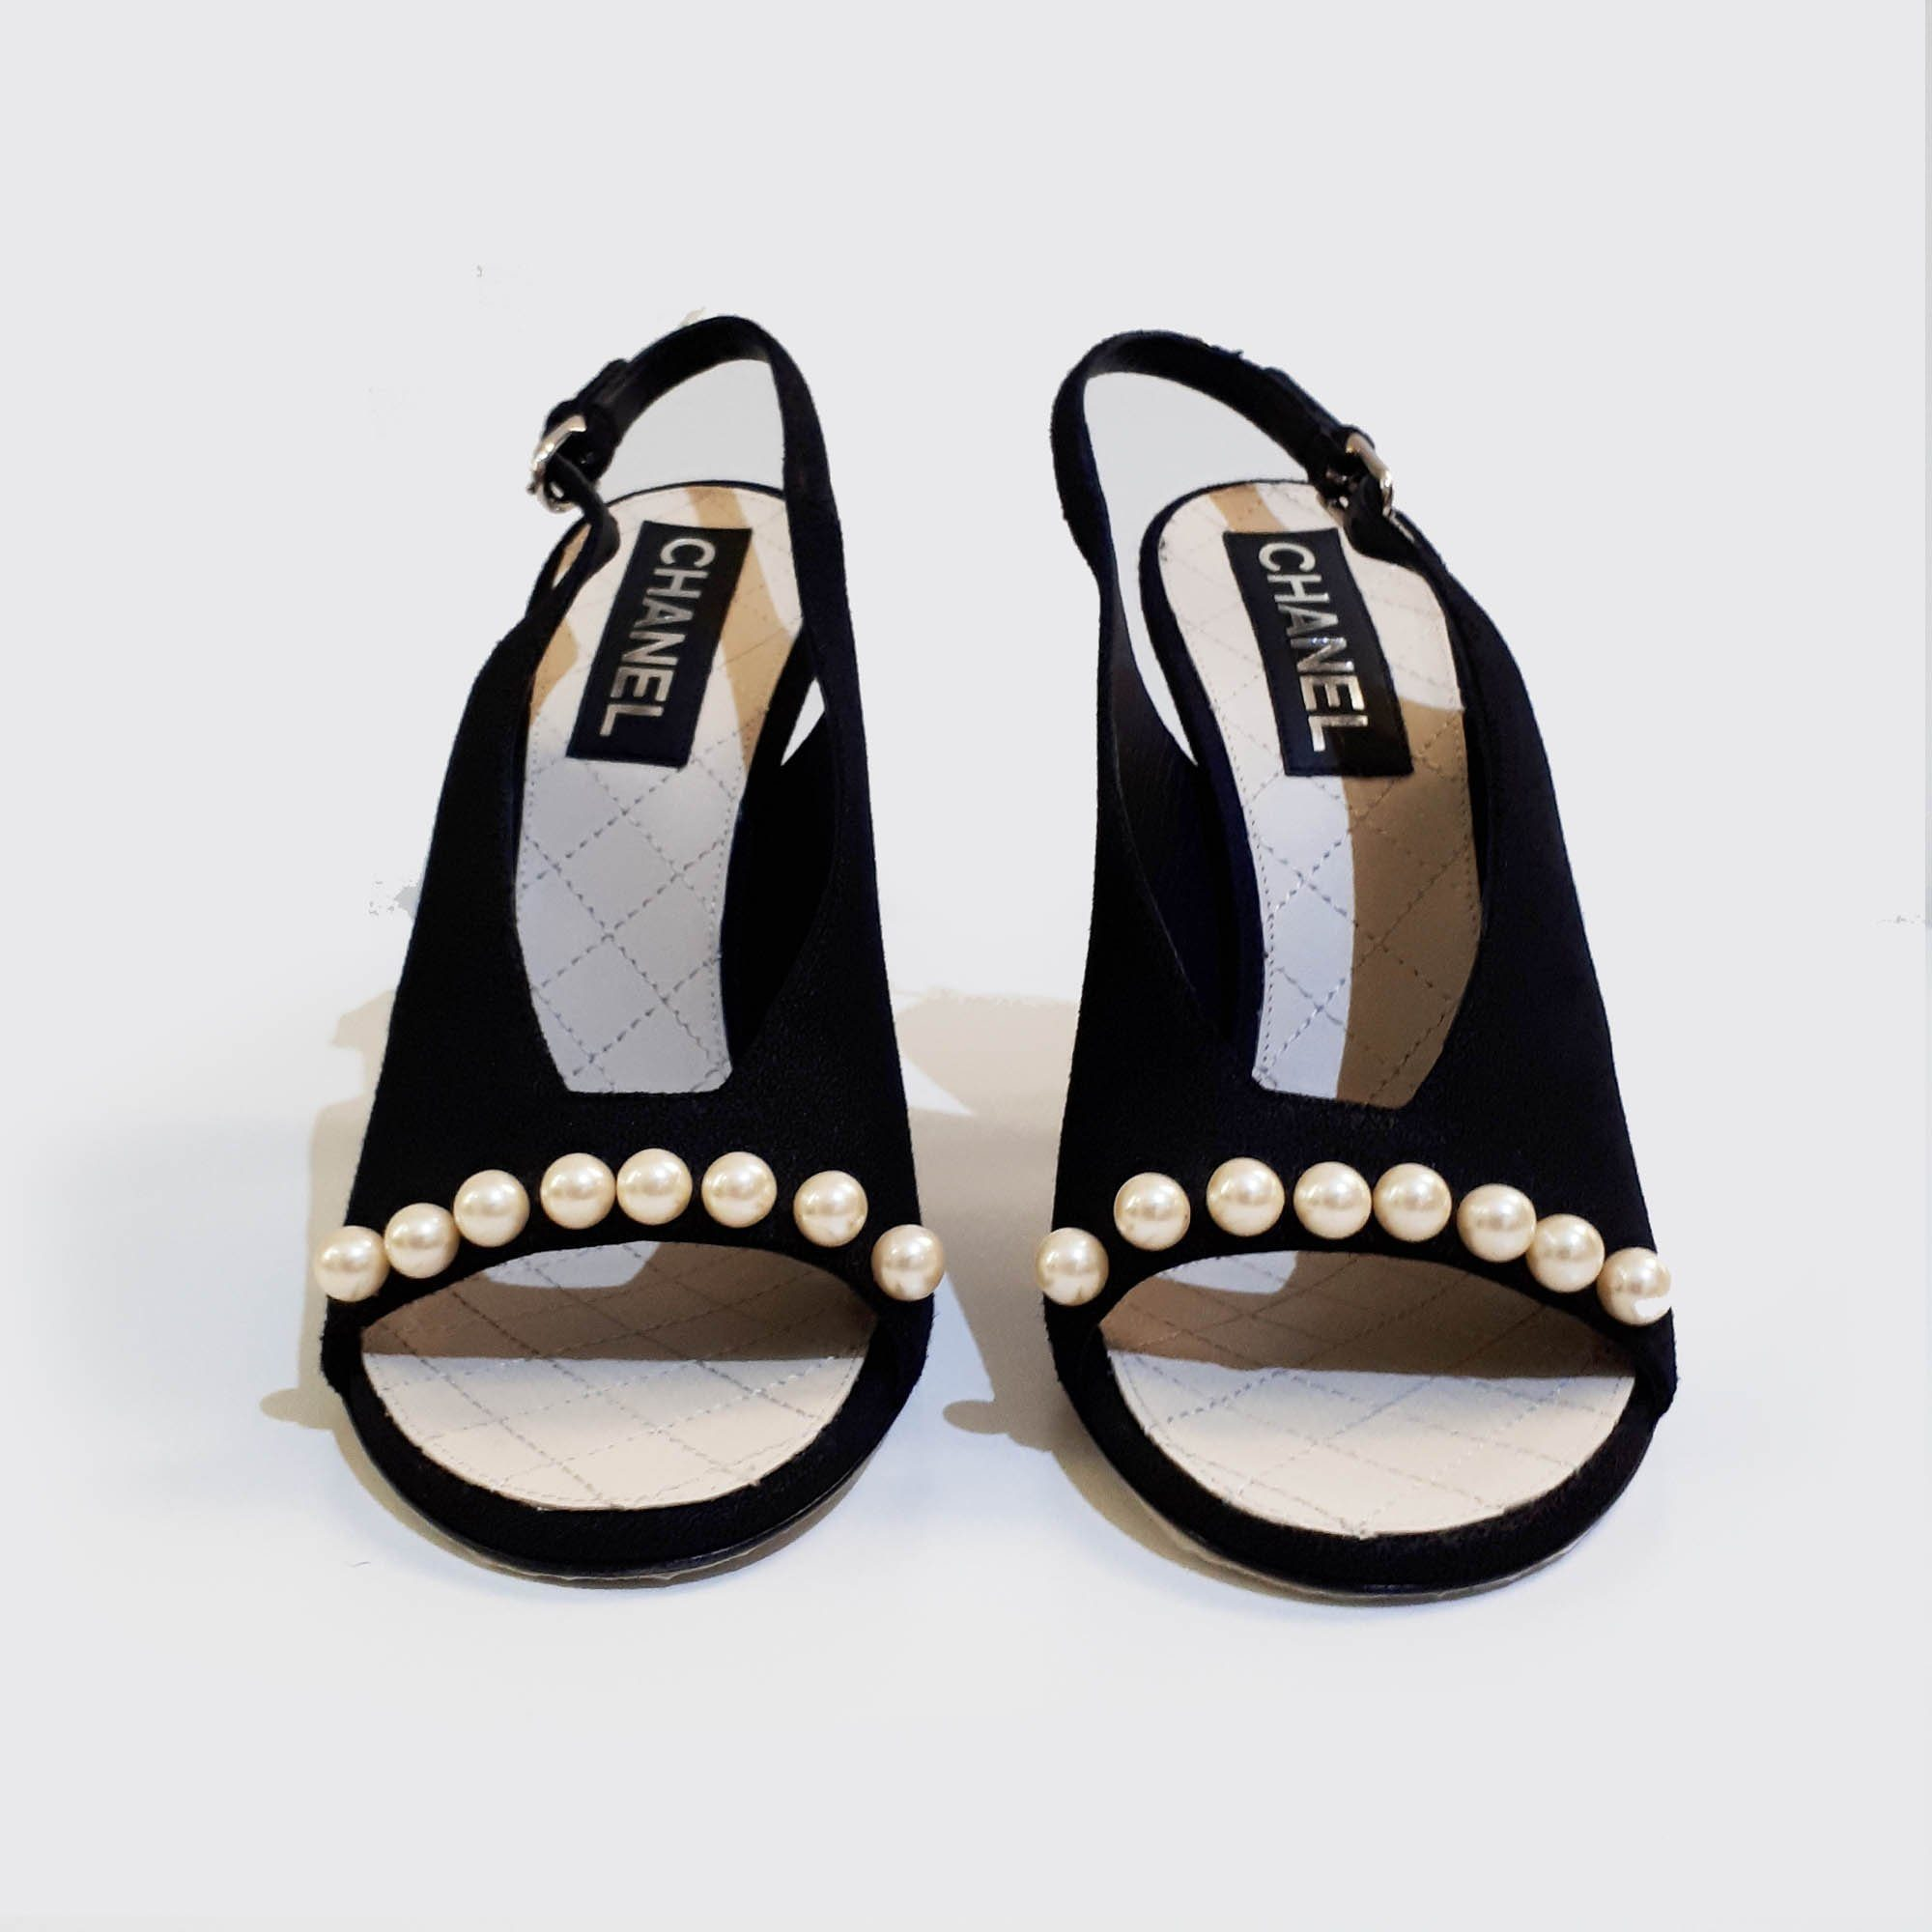 Chanel Suede Sandal Heels With Pearls